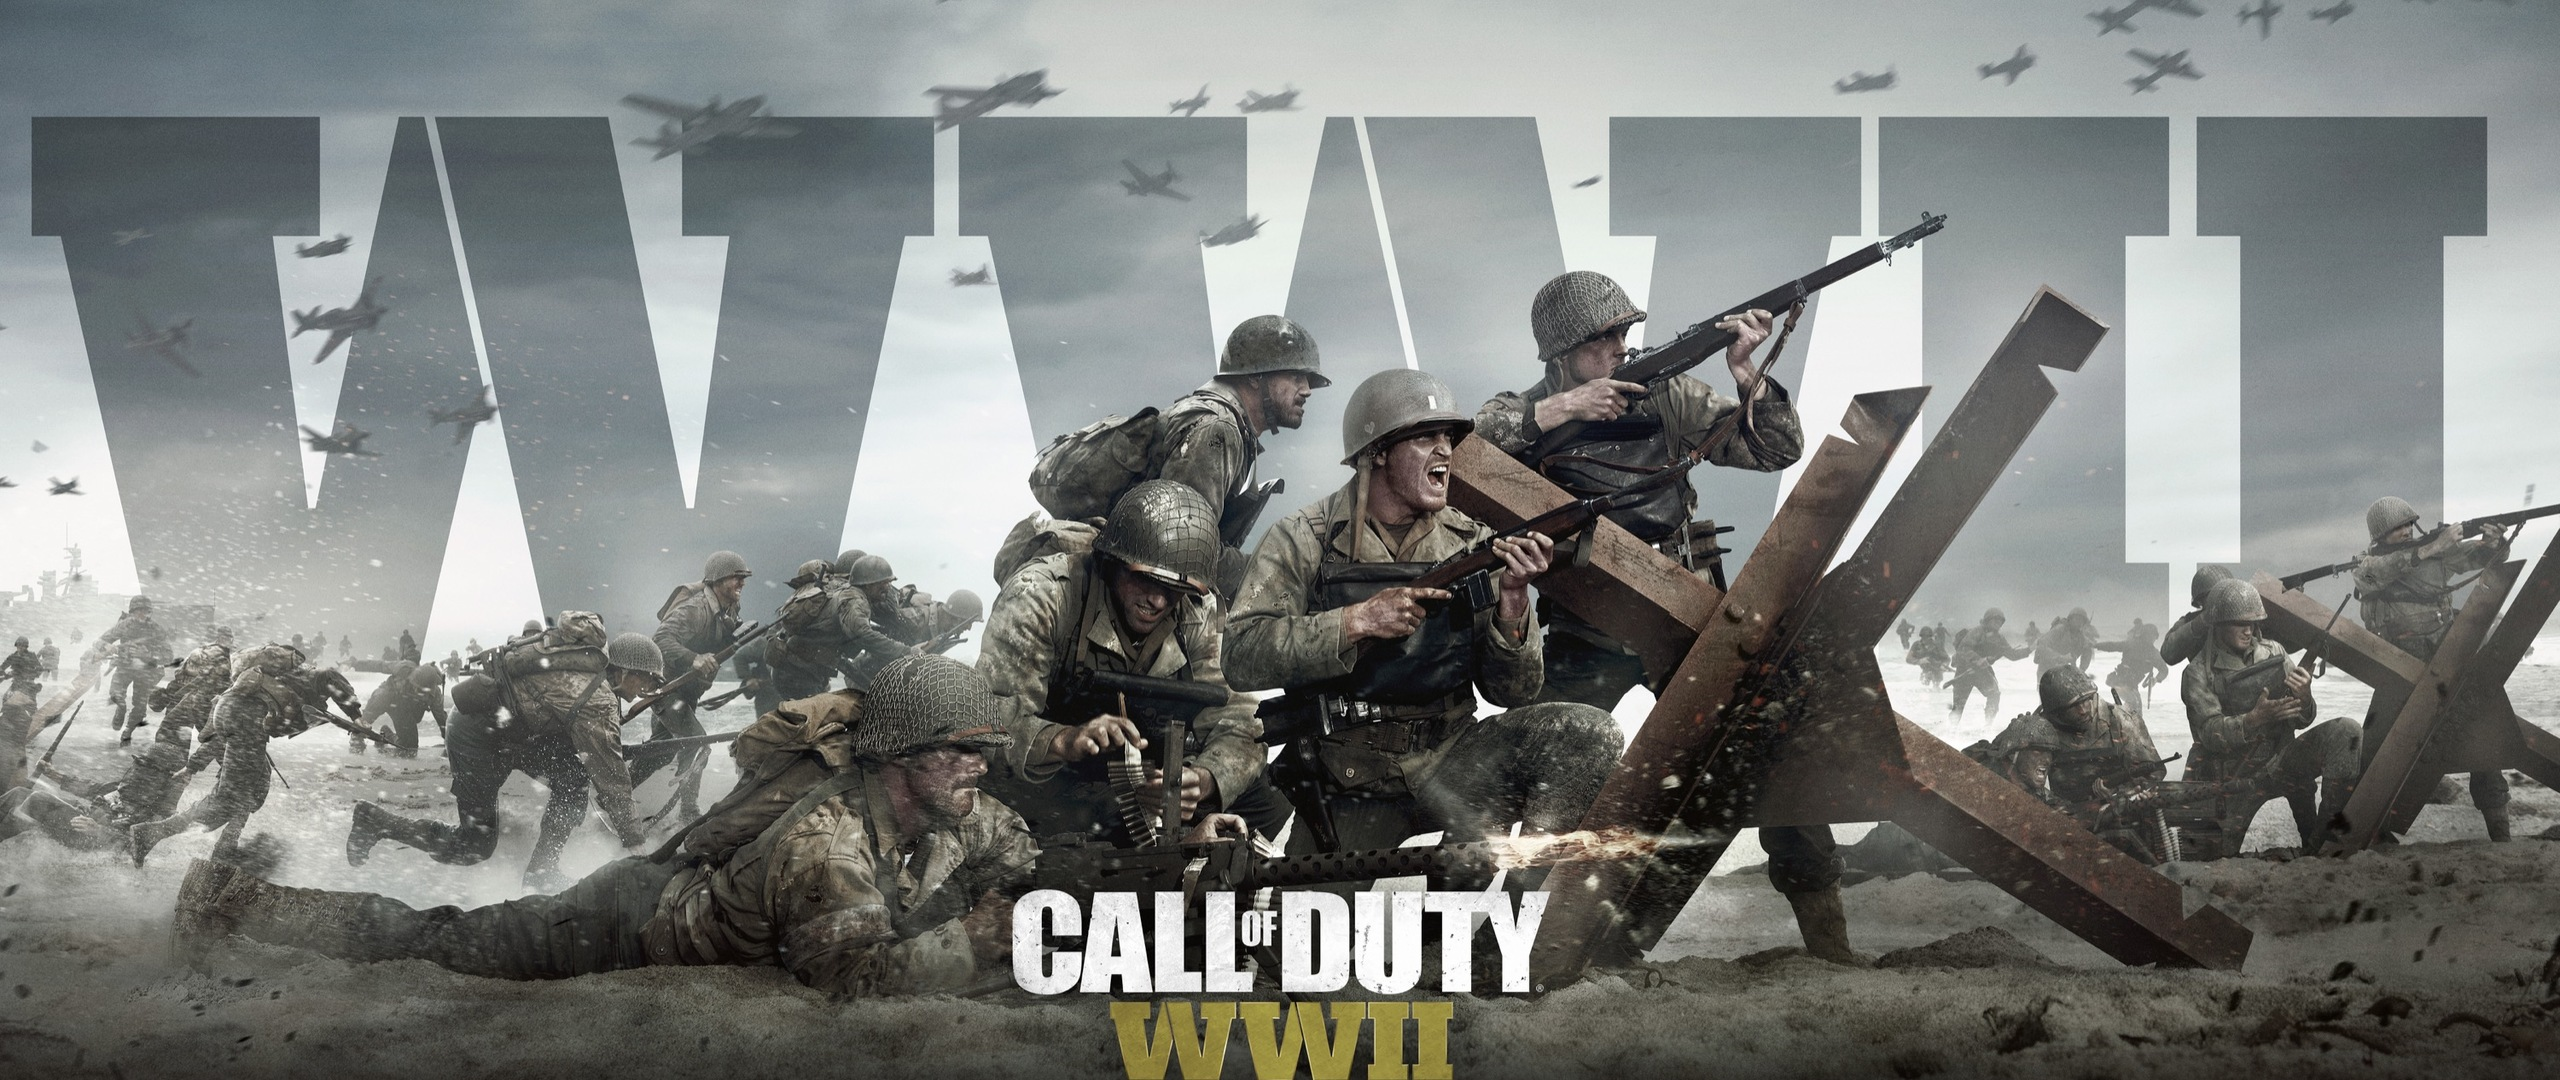 2560x1080 call of duty ww2 2560x1080 resolution hd 4k - Cod ww2 4k pc ...